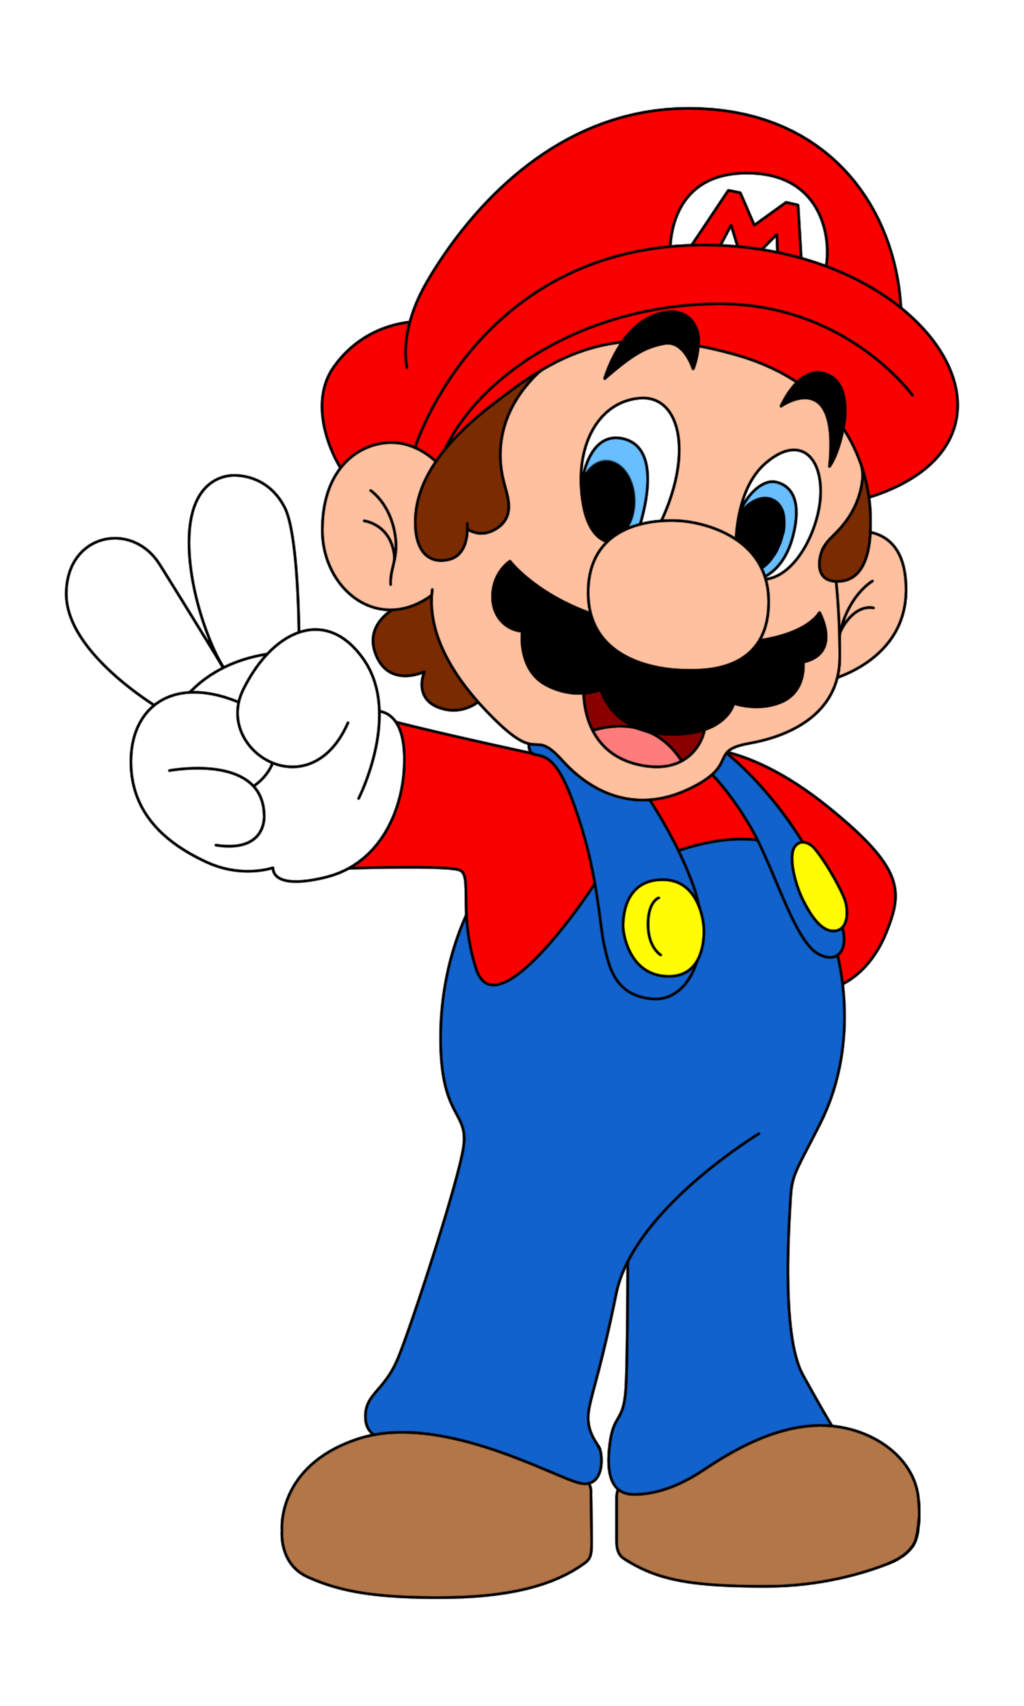 graphic freeuse Image result for super. Mario clipart.